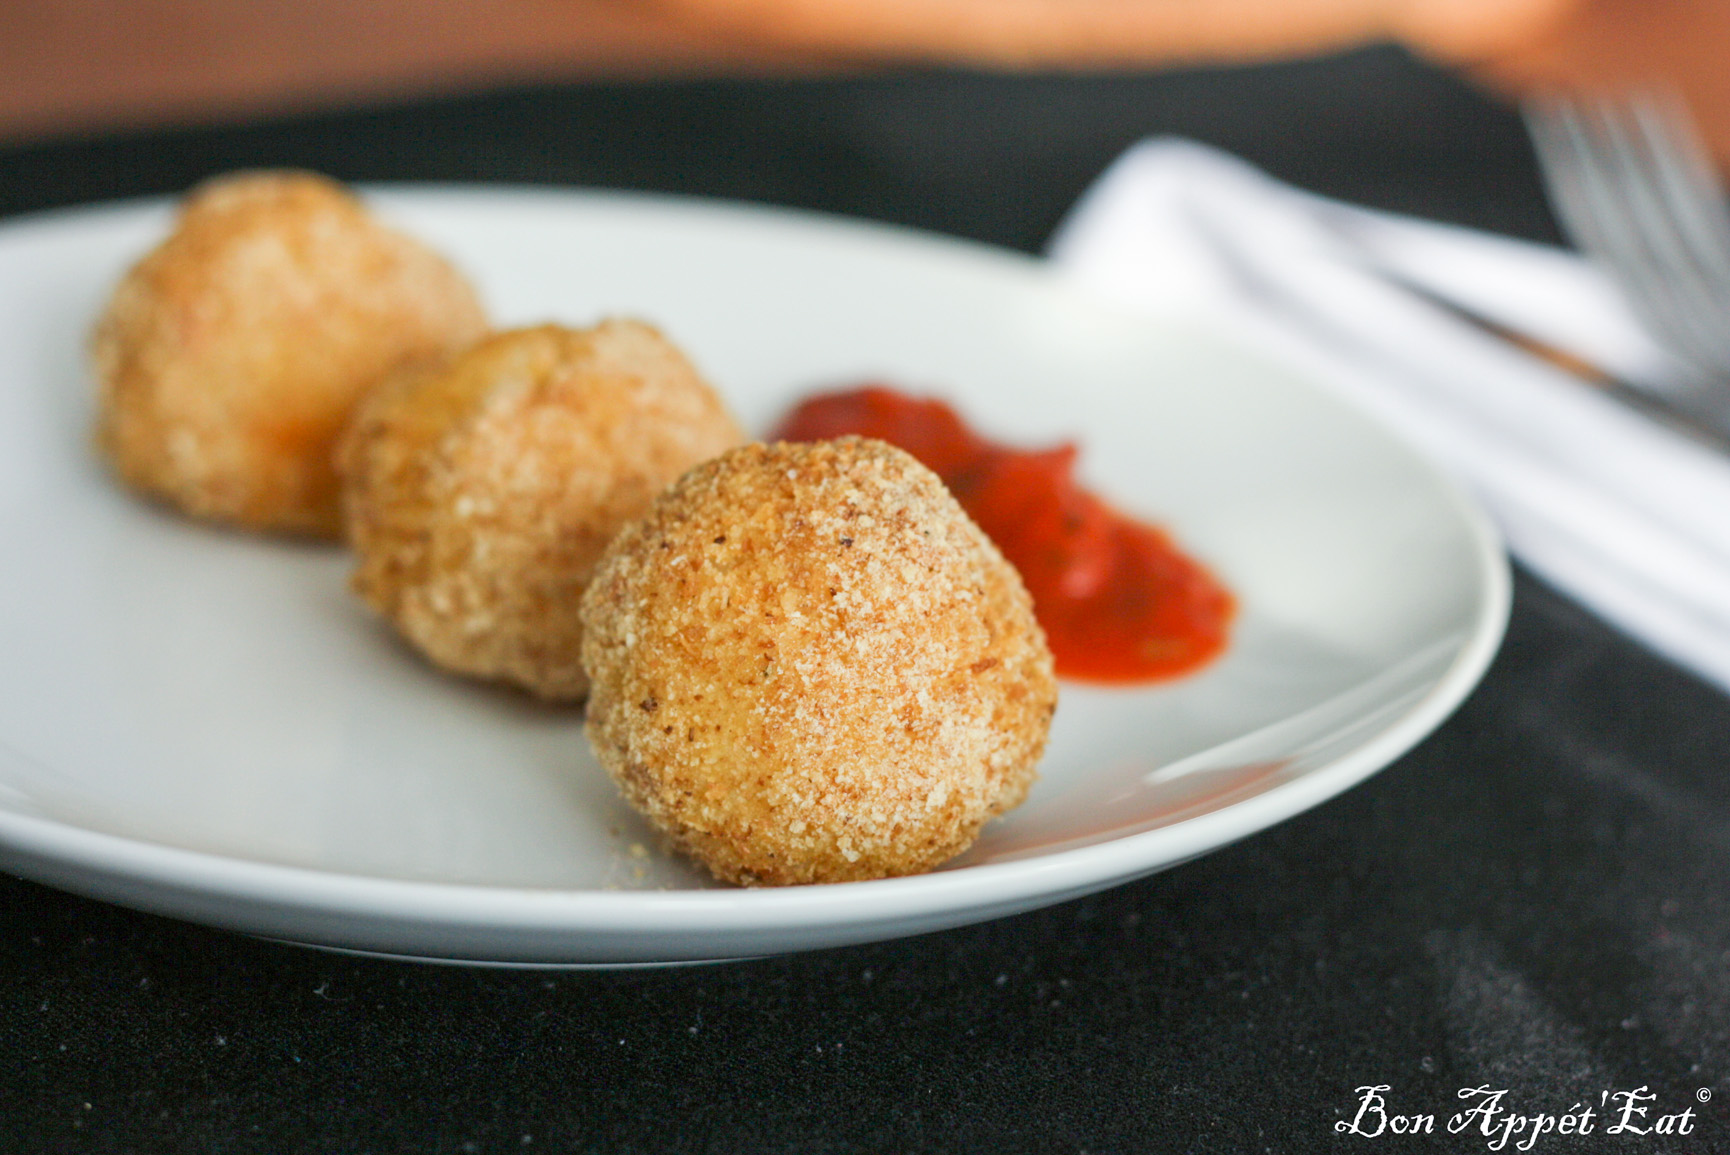 Discover my kitchen philosophy and my Arancinis!